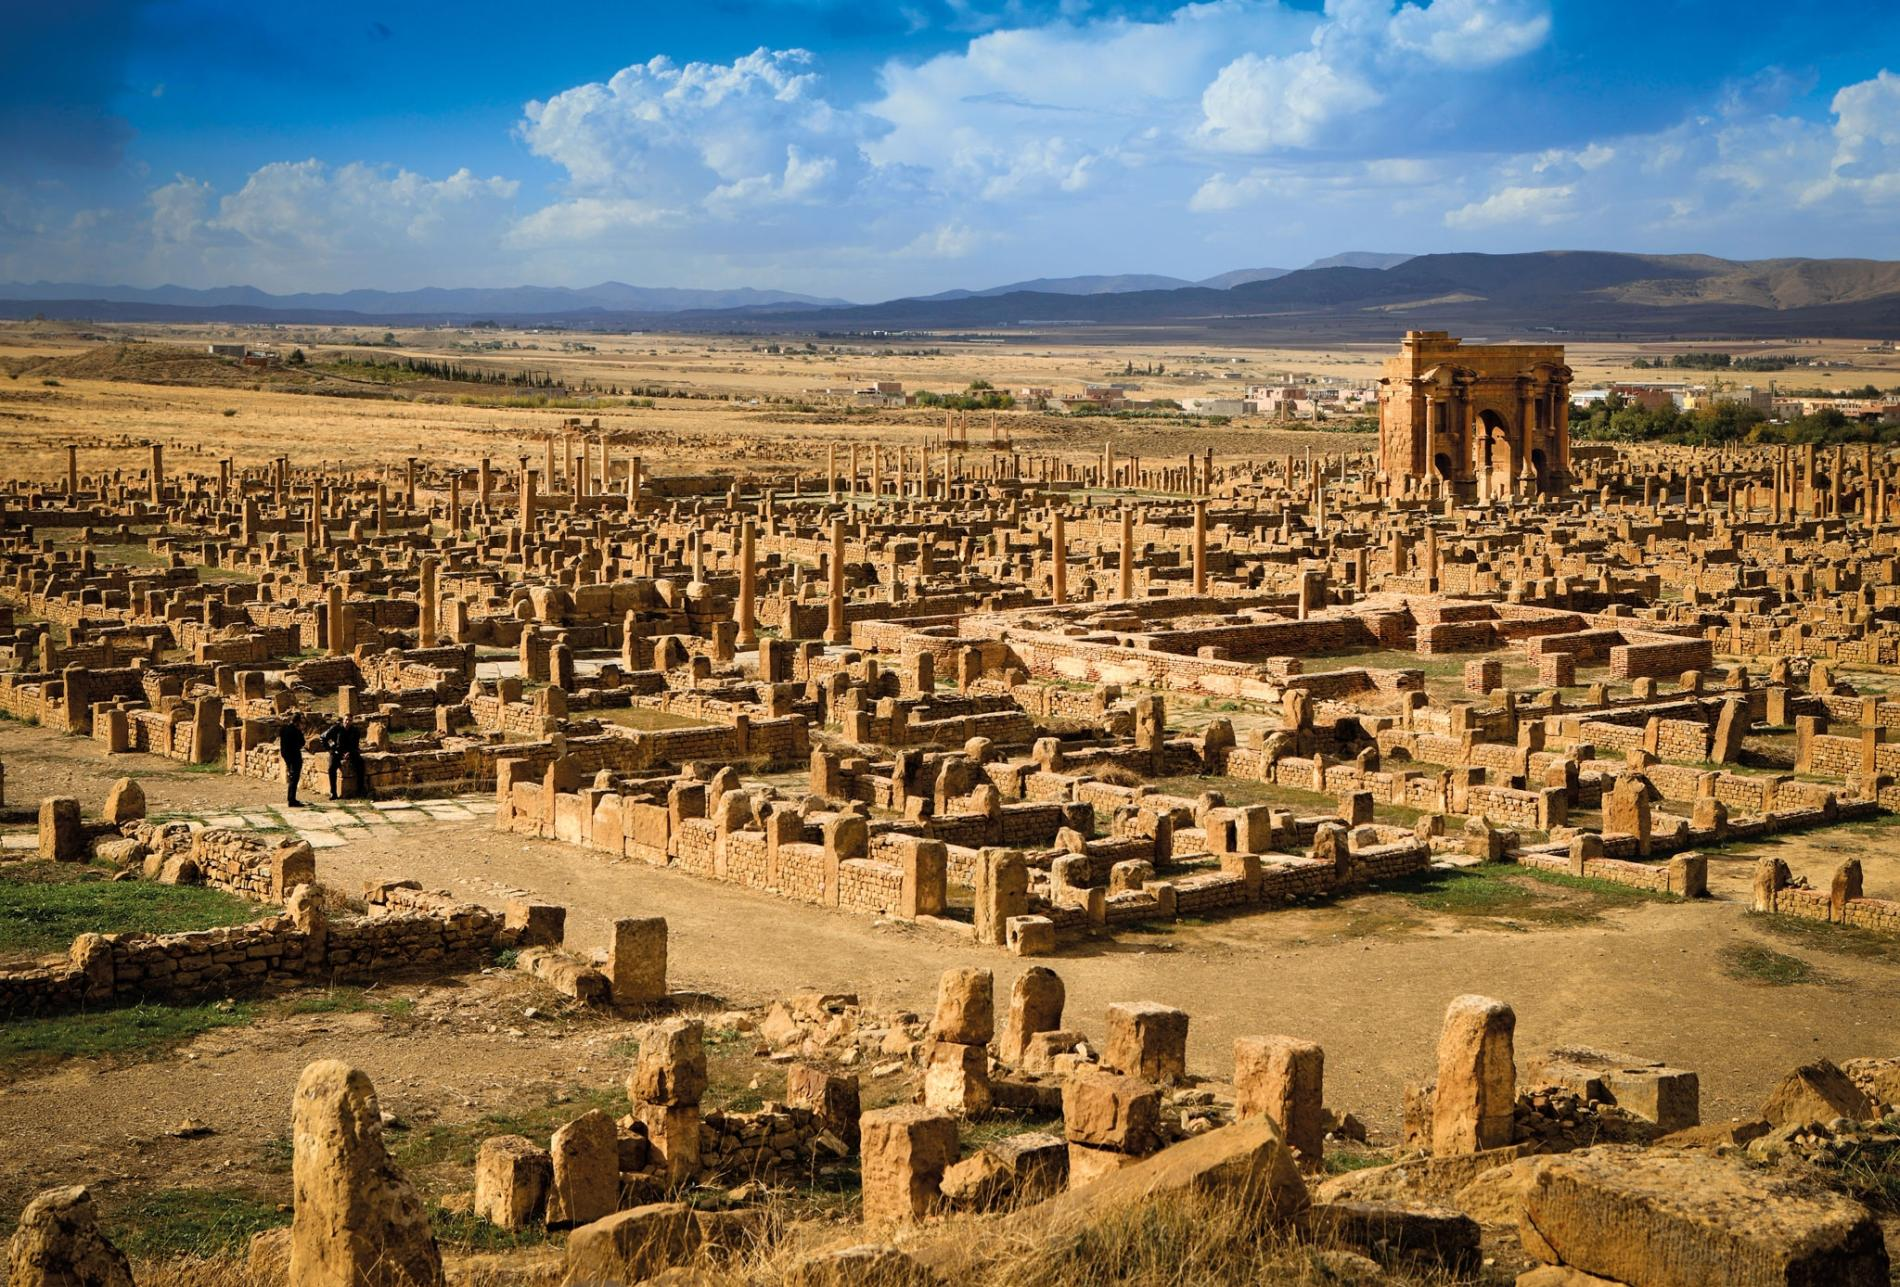 Archaeologists uncovered entire roman city without digging